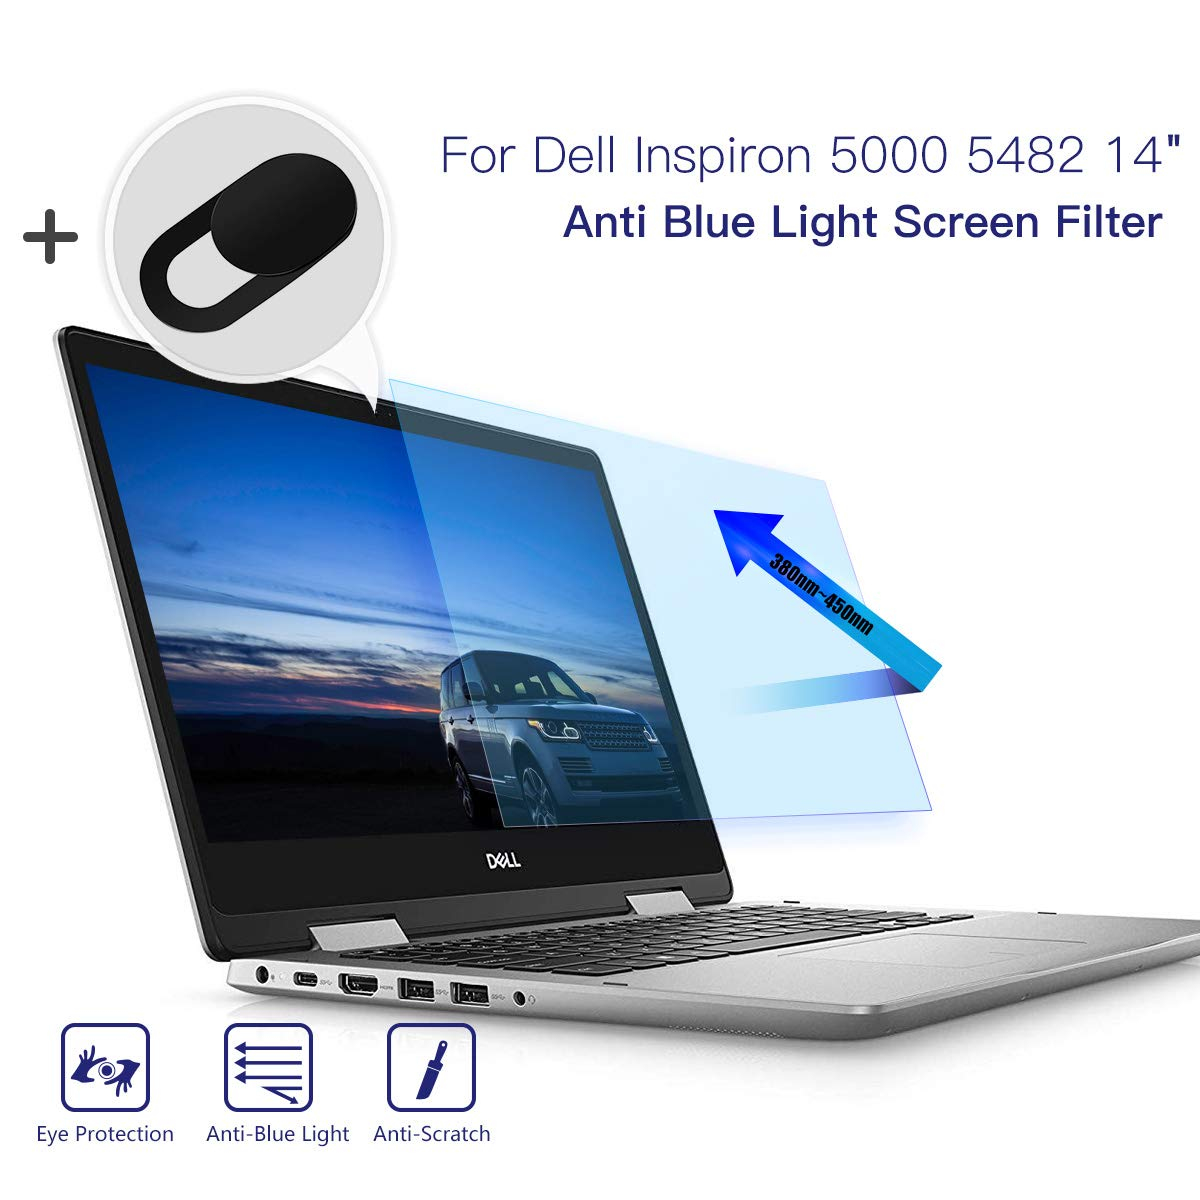 "Anti Blue Light Screen Filter for Dell Inspiron 5000 5482 2-in-1 14"" Touch Screen Laptop, Anti Glare Screen Protector Blue Light Blocking Eye Protection Screen Protector with Webcam Cover"